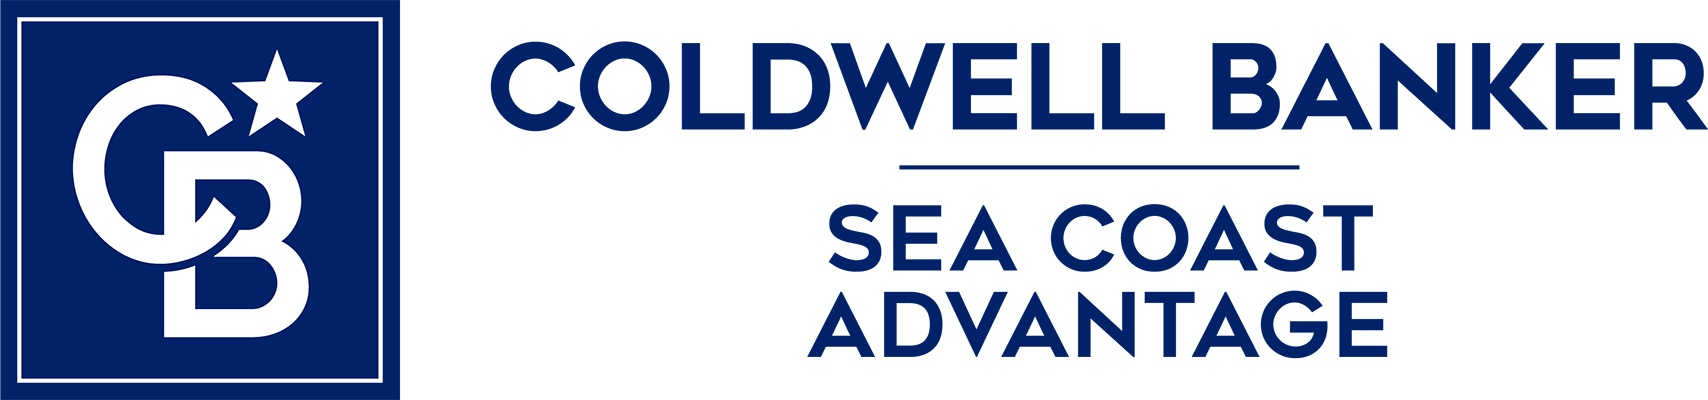 Monika Tollinger - Coldwell Banker Sea Coast Advantage Realty